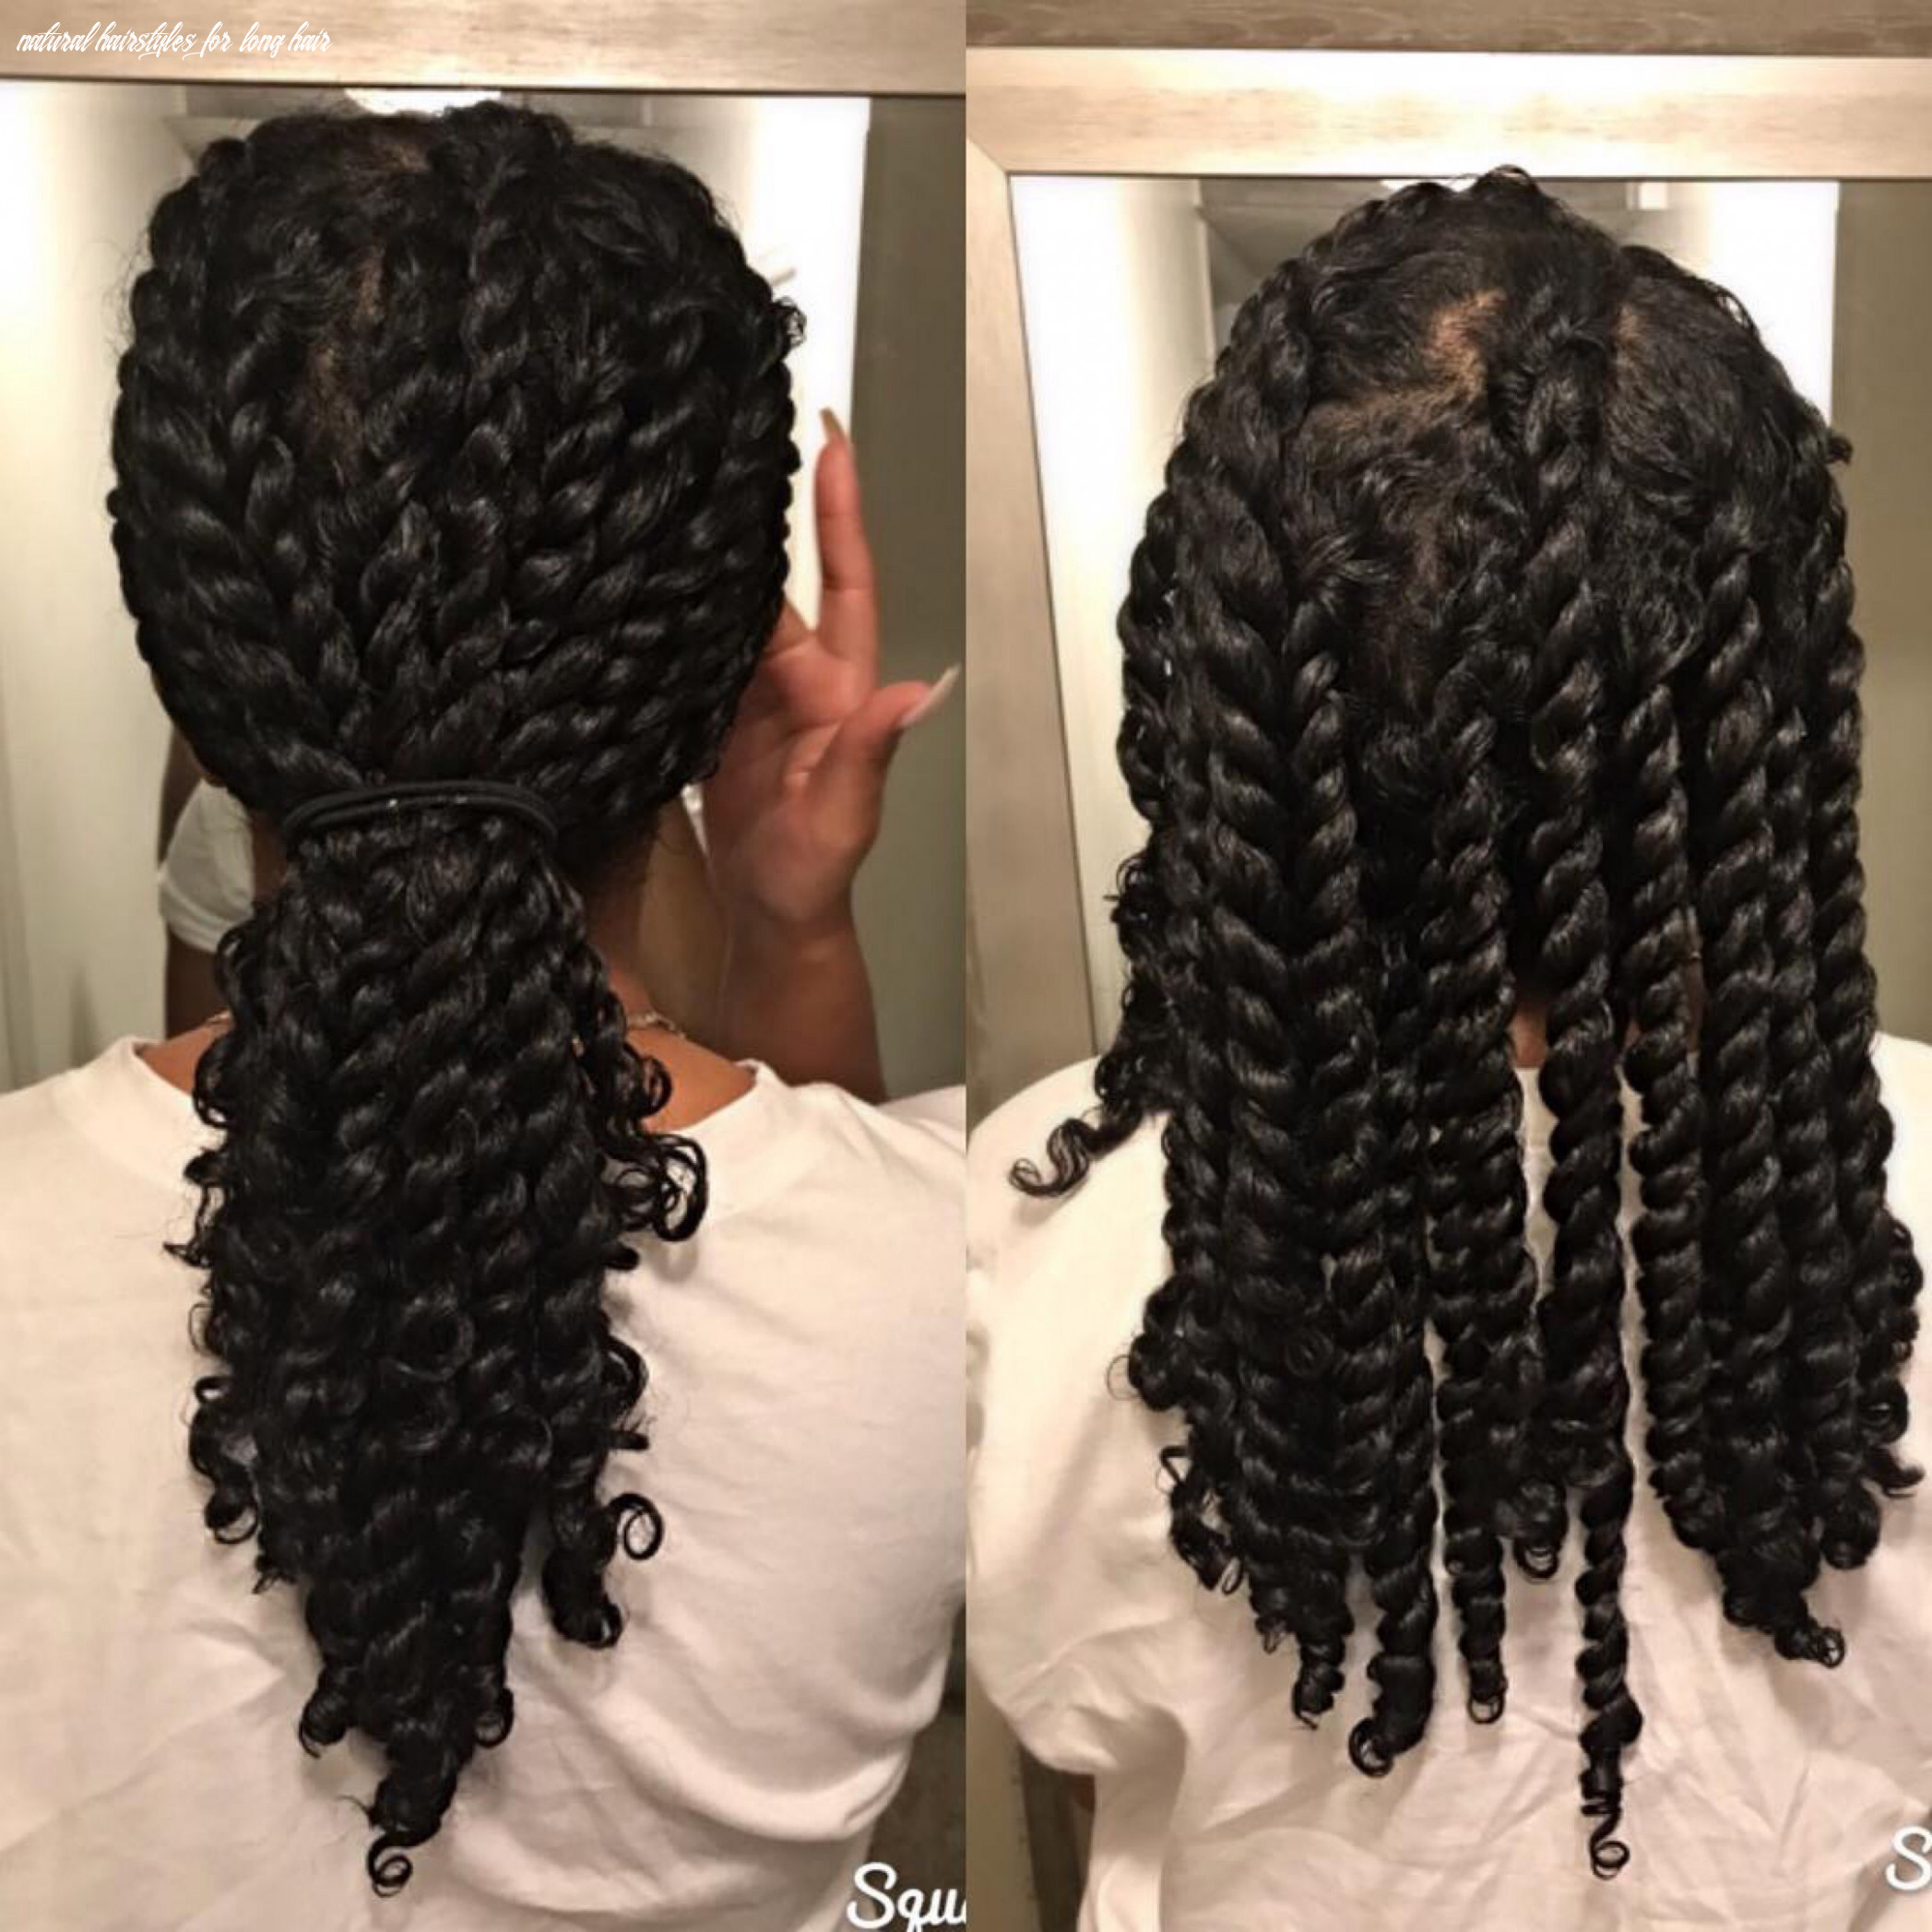 11 super cute protective styles for winter | long natural hair